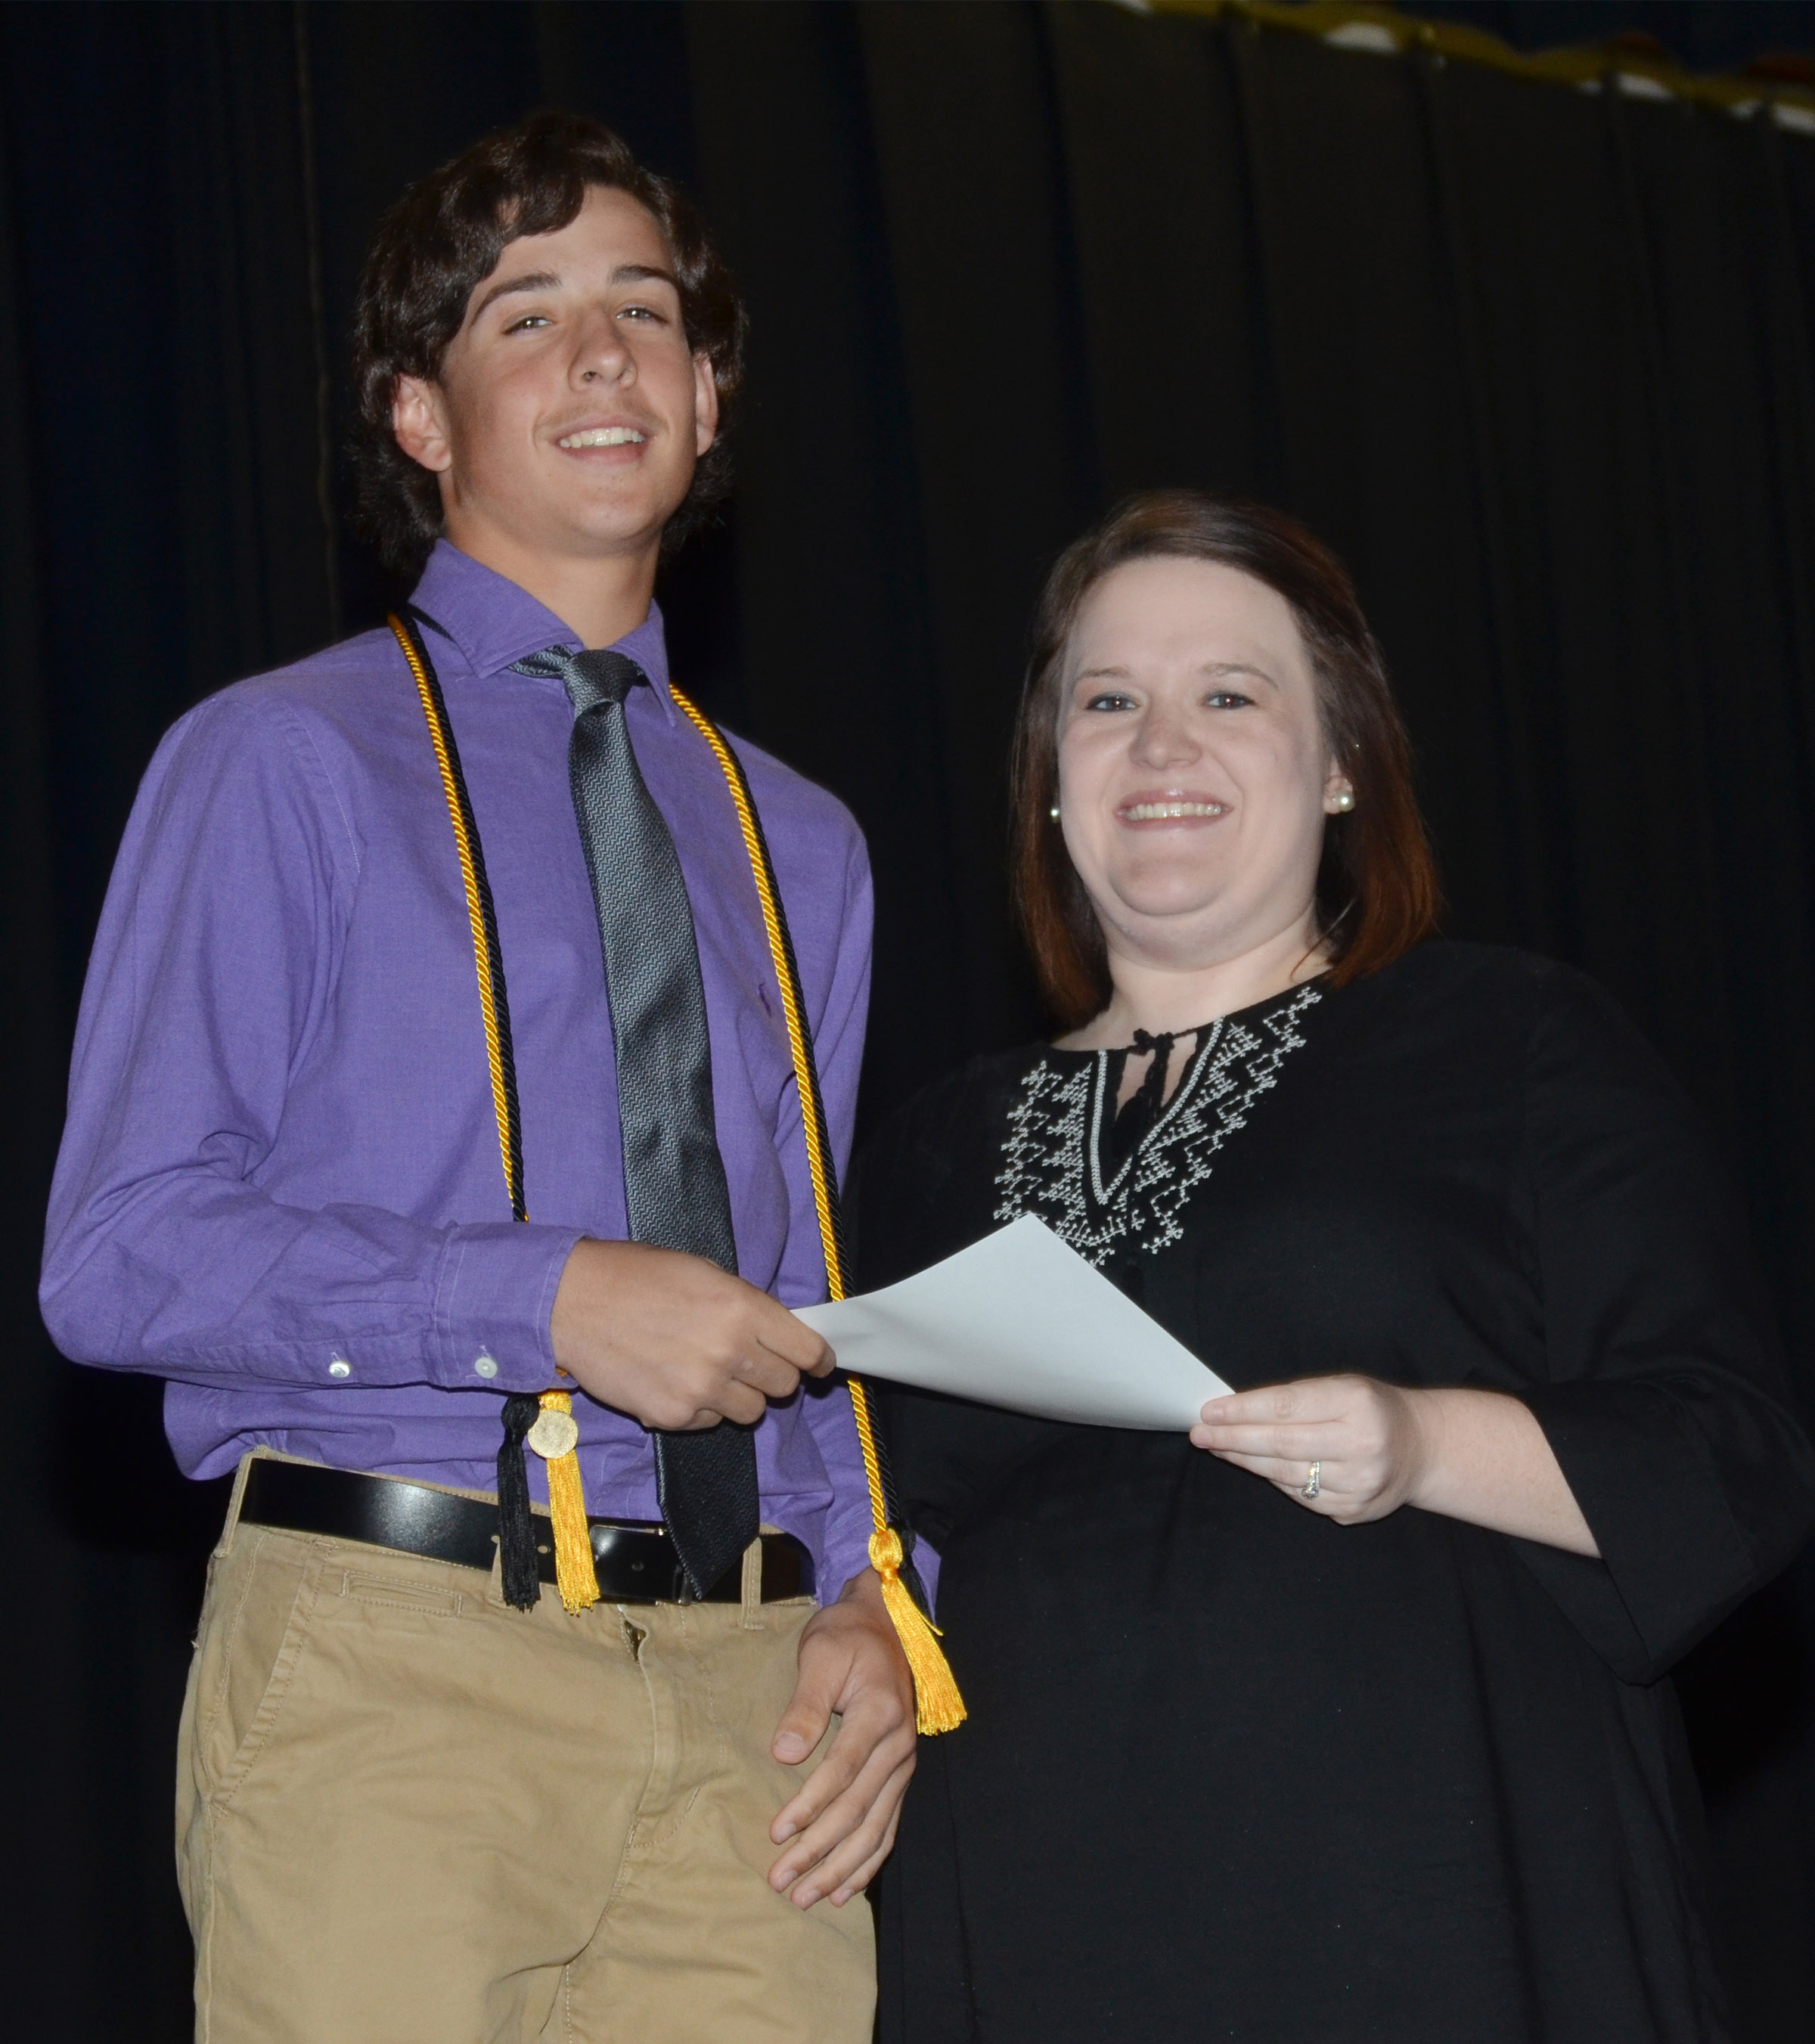 CMS eighth-grader John Orberson receives the language arts award from teacher Paige Cook.